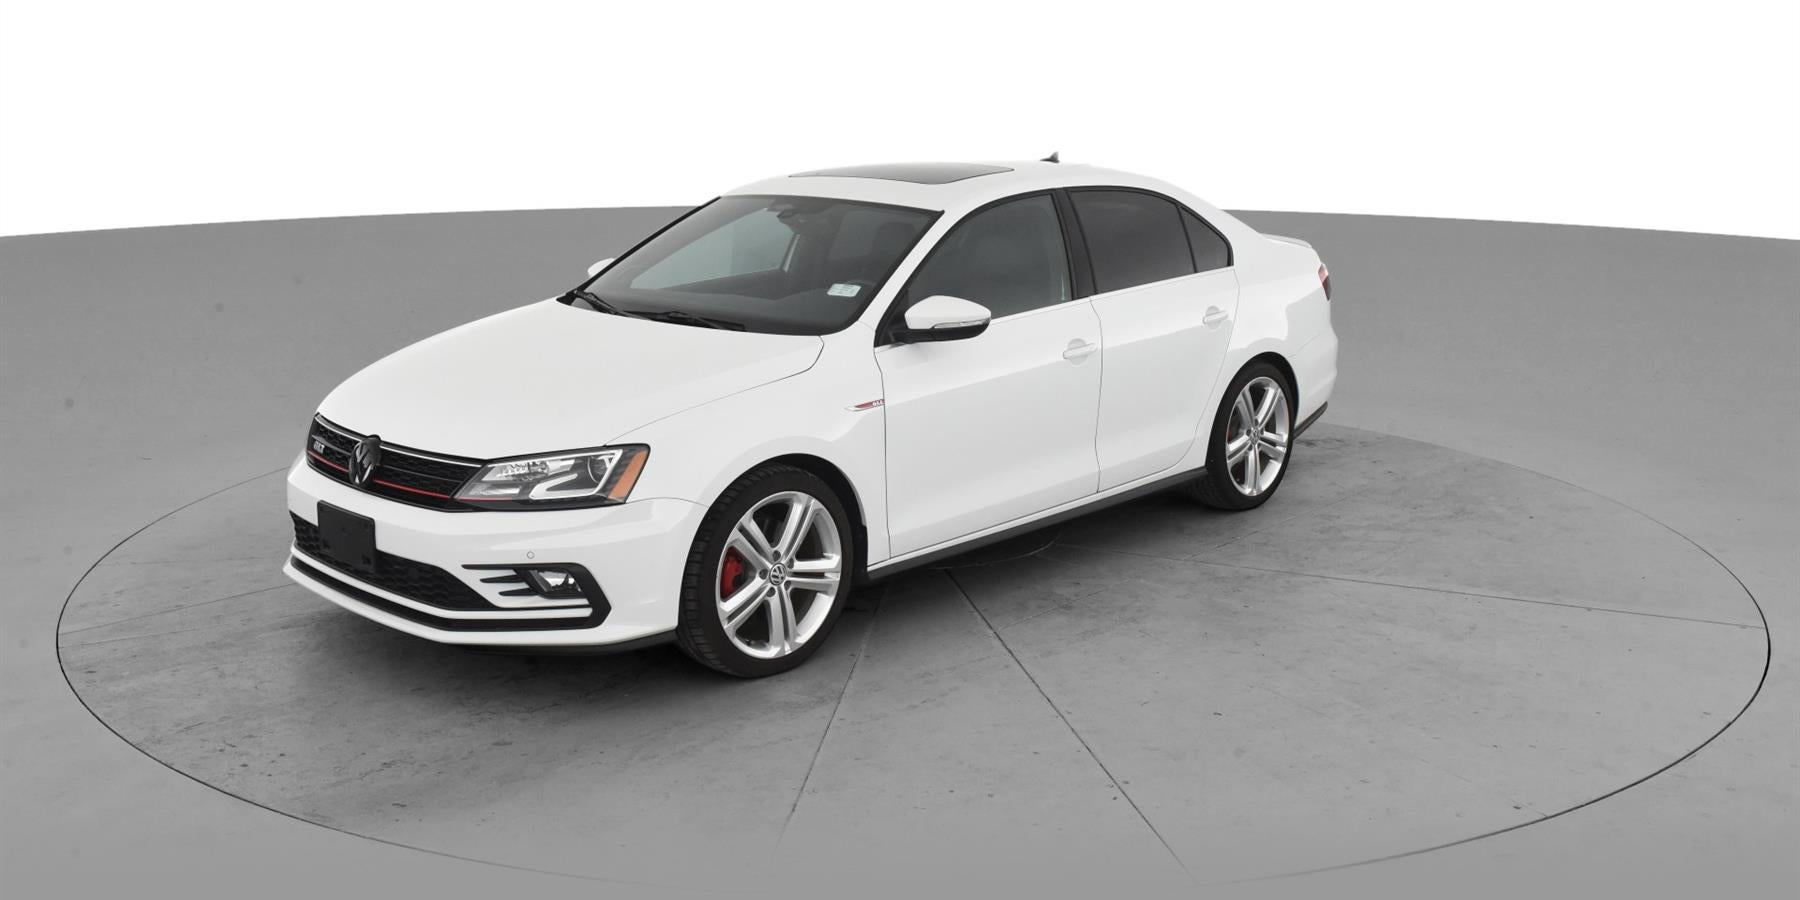 2016 Volkswagen Jetta 2 0t Gli Sel Sedan 4d For Sale Carvana